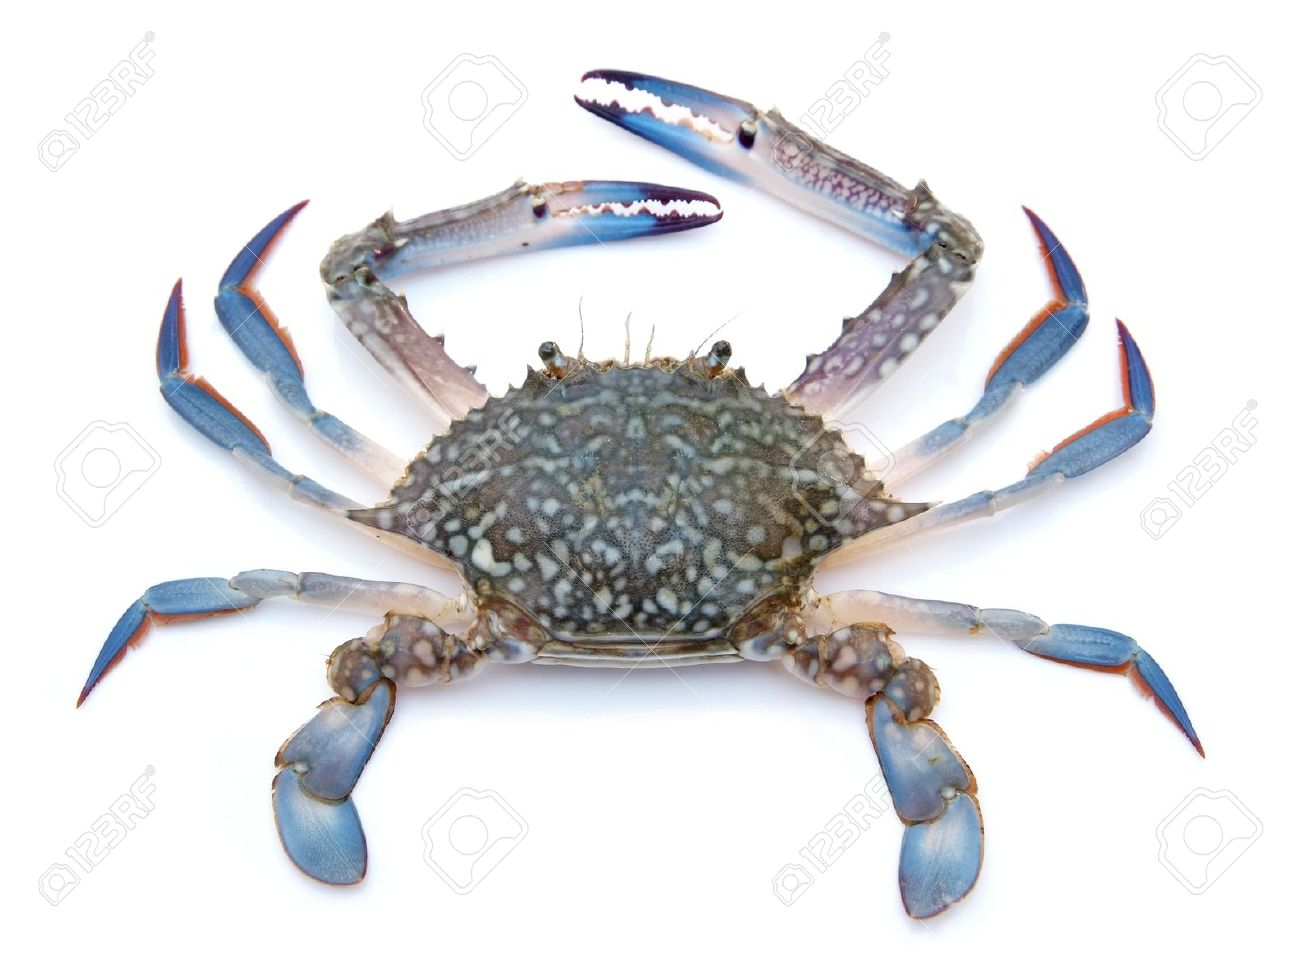 Crab Pictures Kids Search